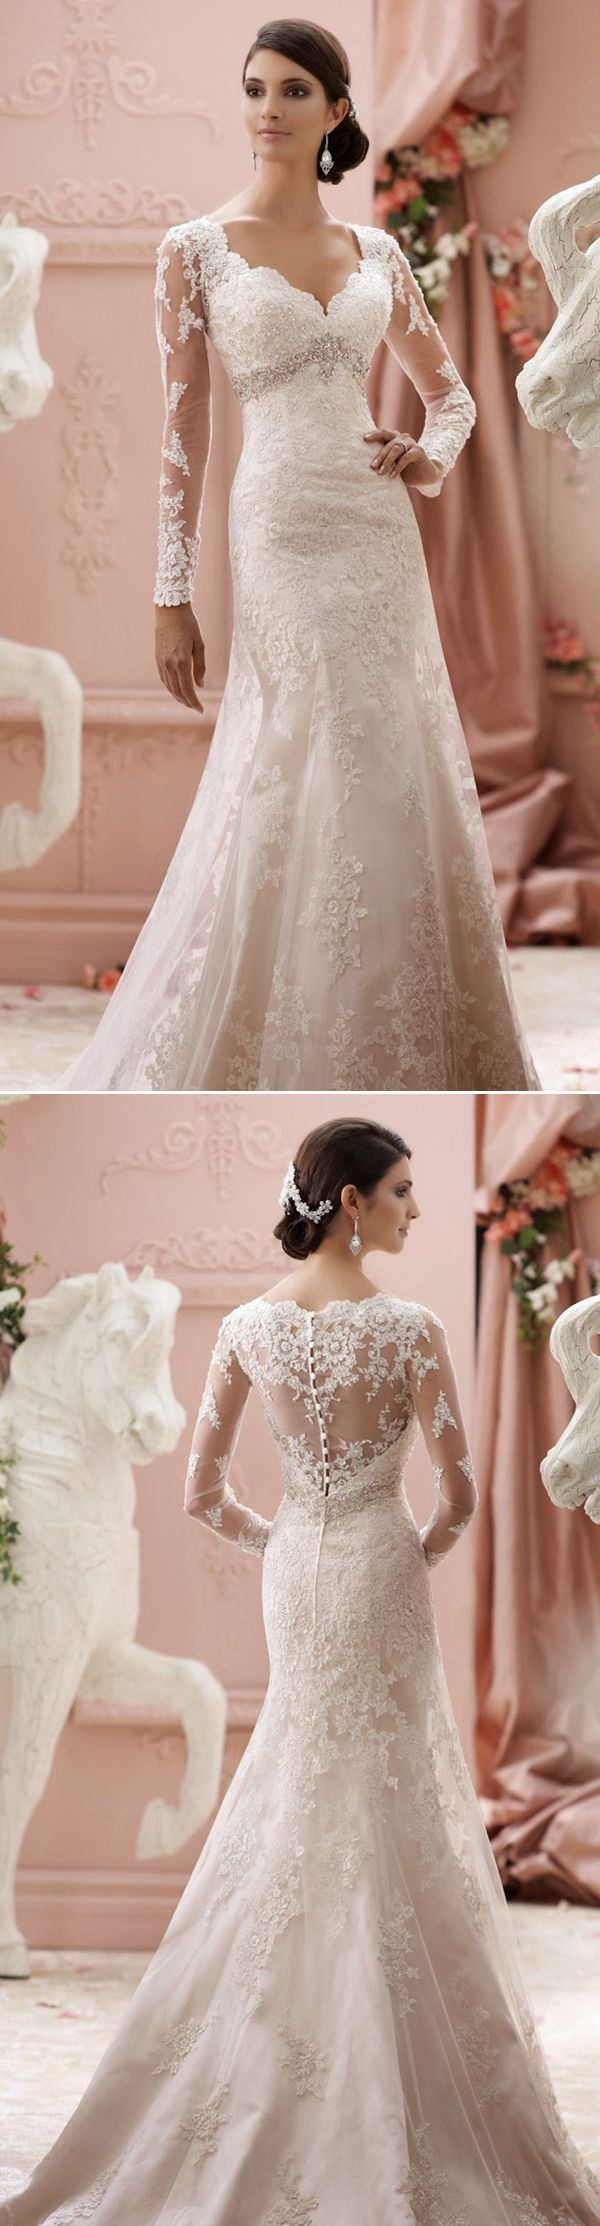 30 of the Most Beautiful Long Sleeve Wedding Dresses of 2015!